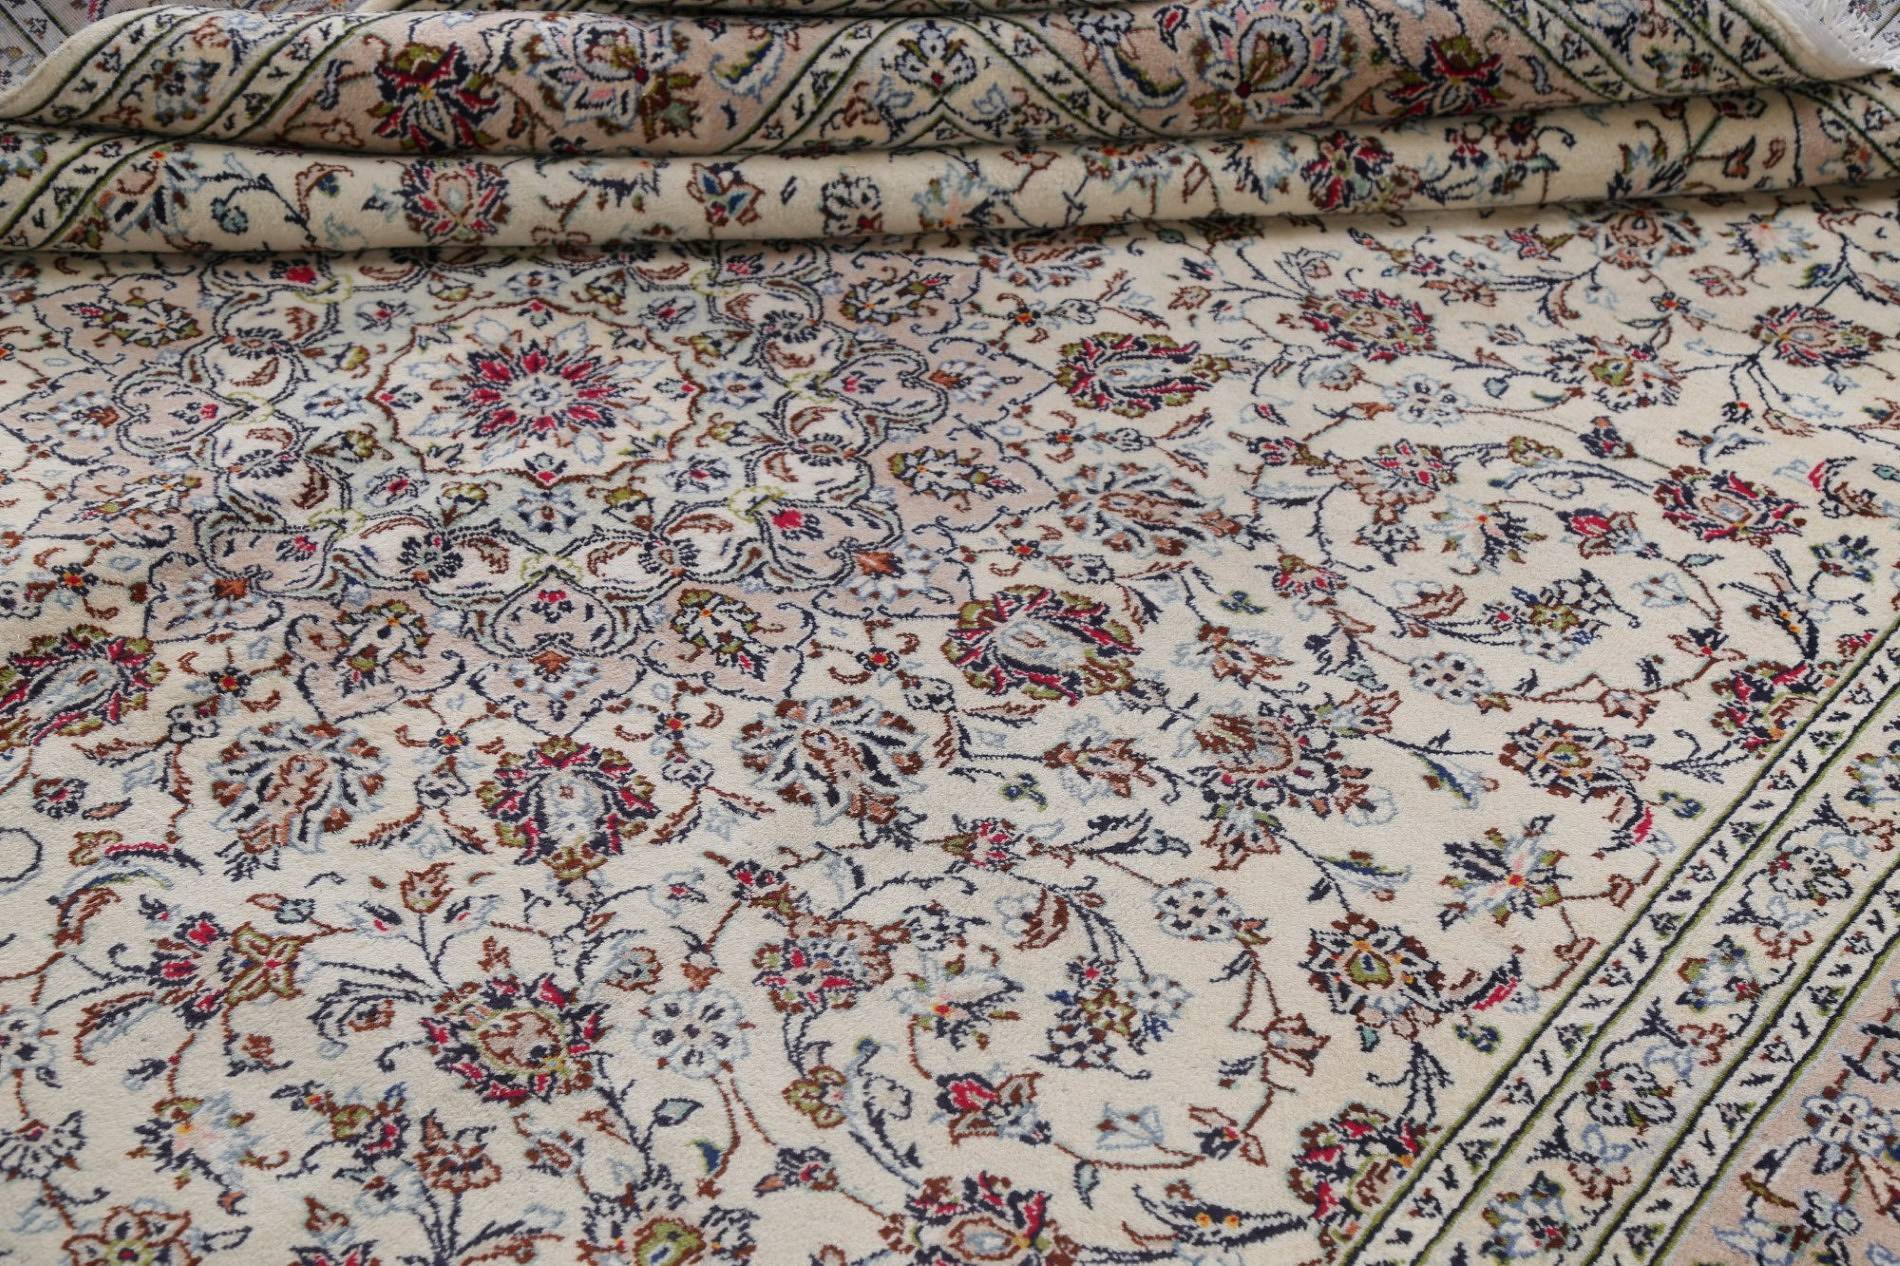 One-of-a-Kind Floral Ivory Kashan Persian Hand-Knotted 10x13 Wool Area Rug